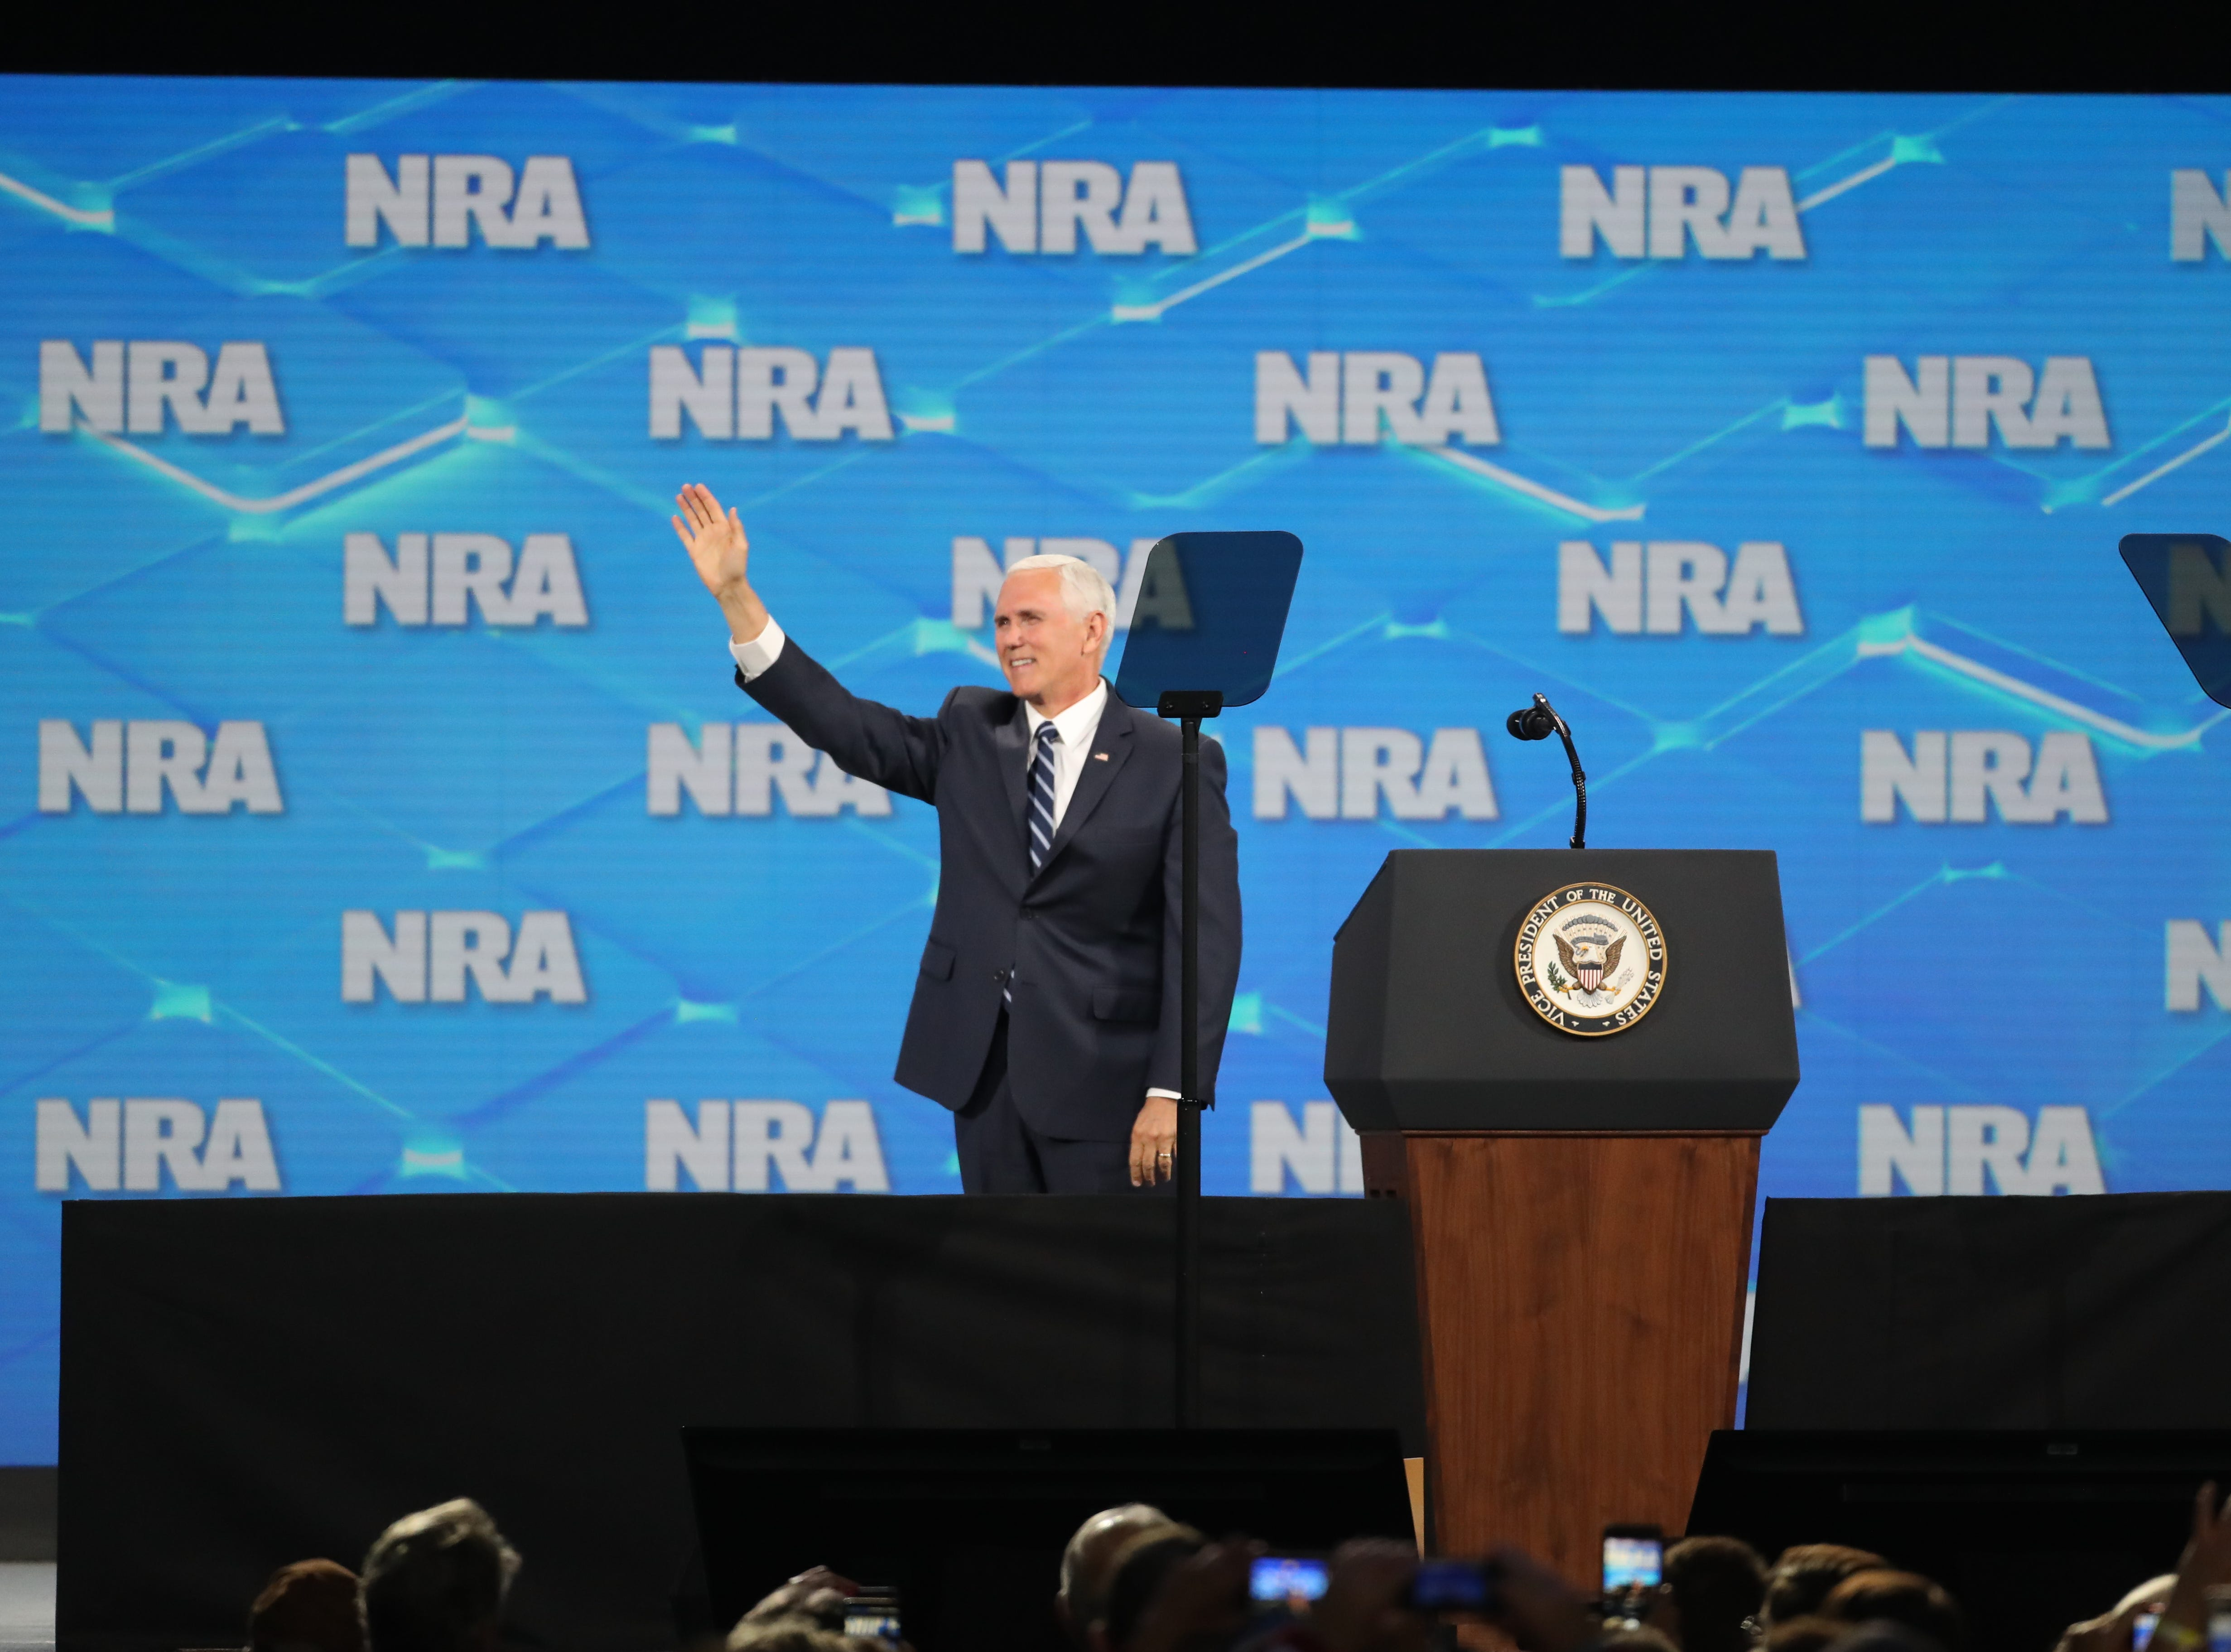 Vice President Mike Pence waves to the crowd before his speech at the NRA Institute for Legislative Action (NRA-ILA) Leadership Forum at Lucas Oil Stadium on Friday, April 26, 2019.